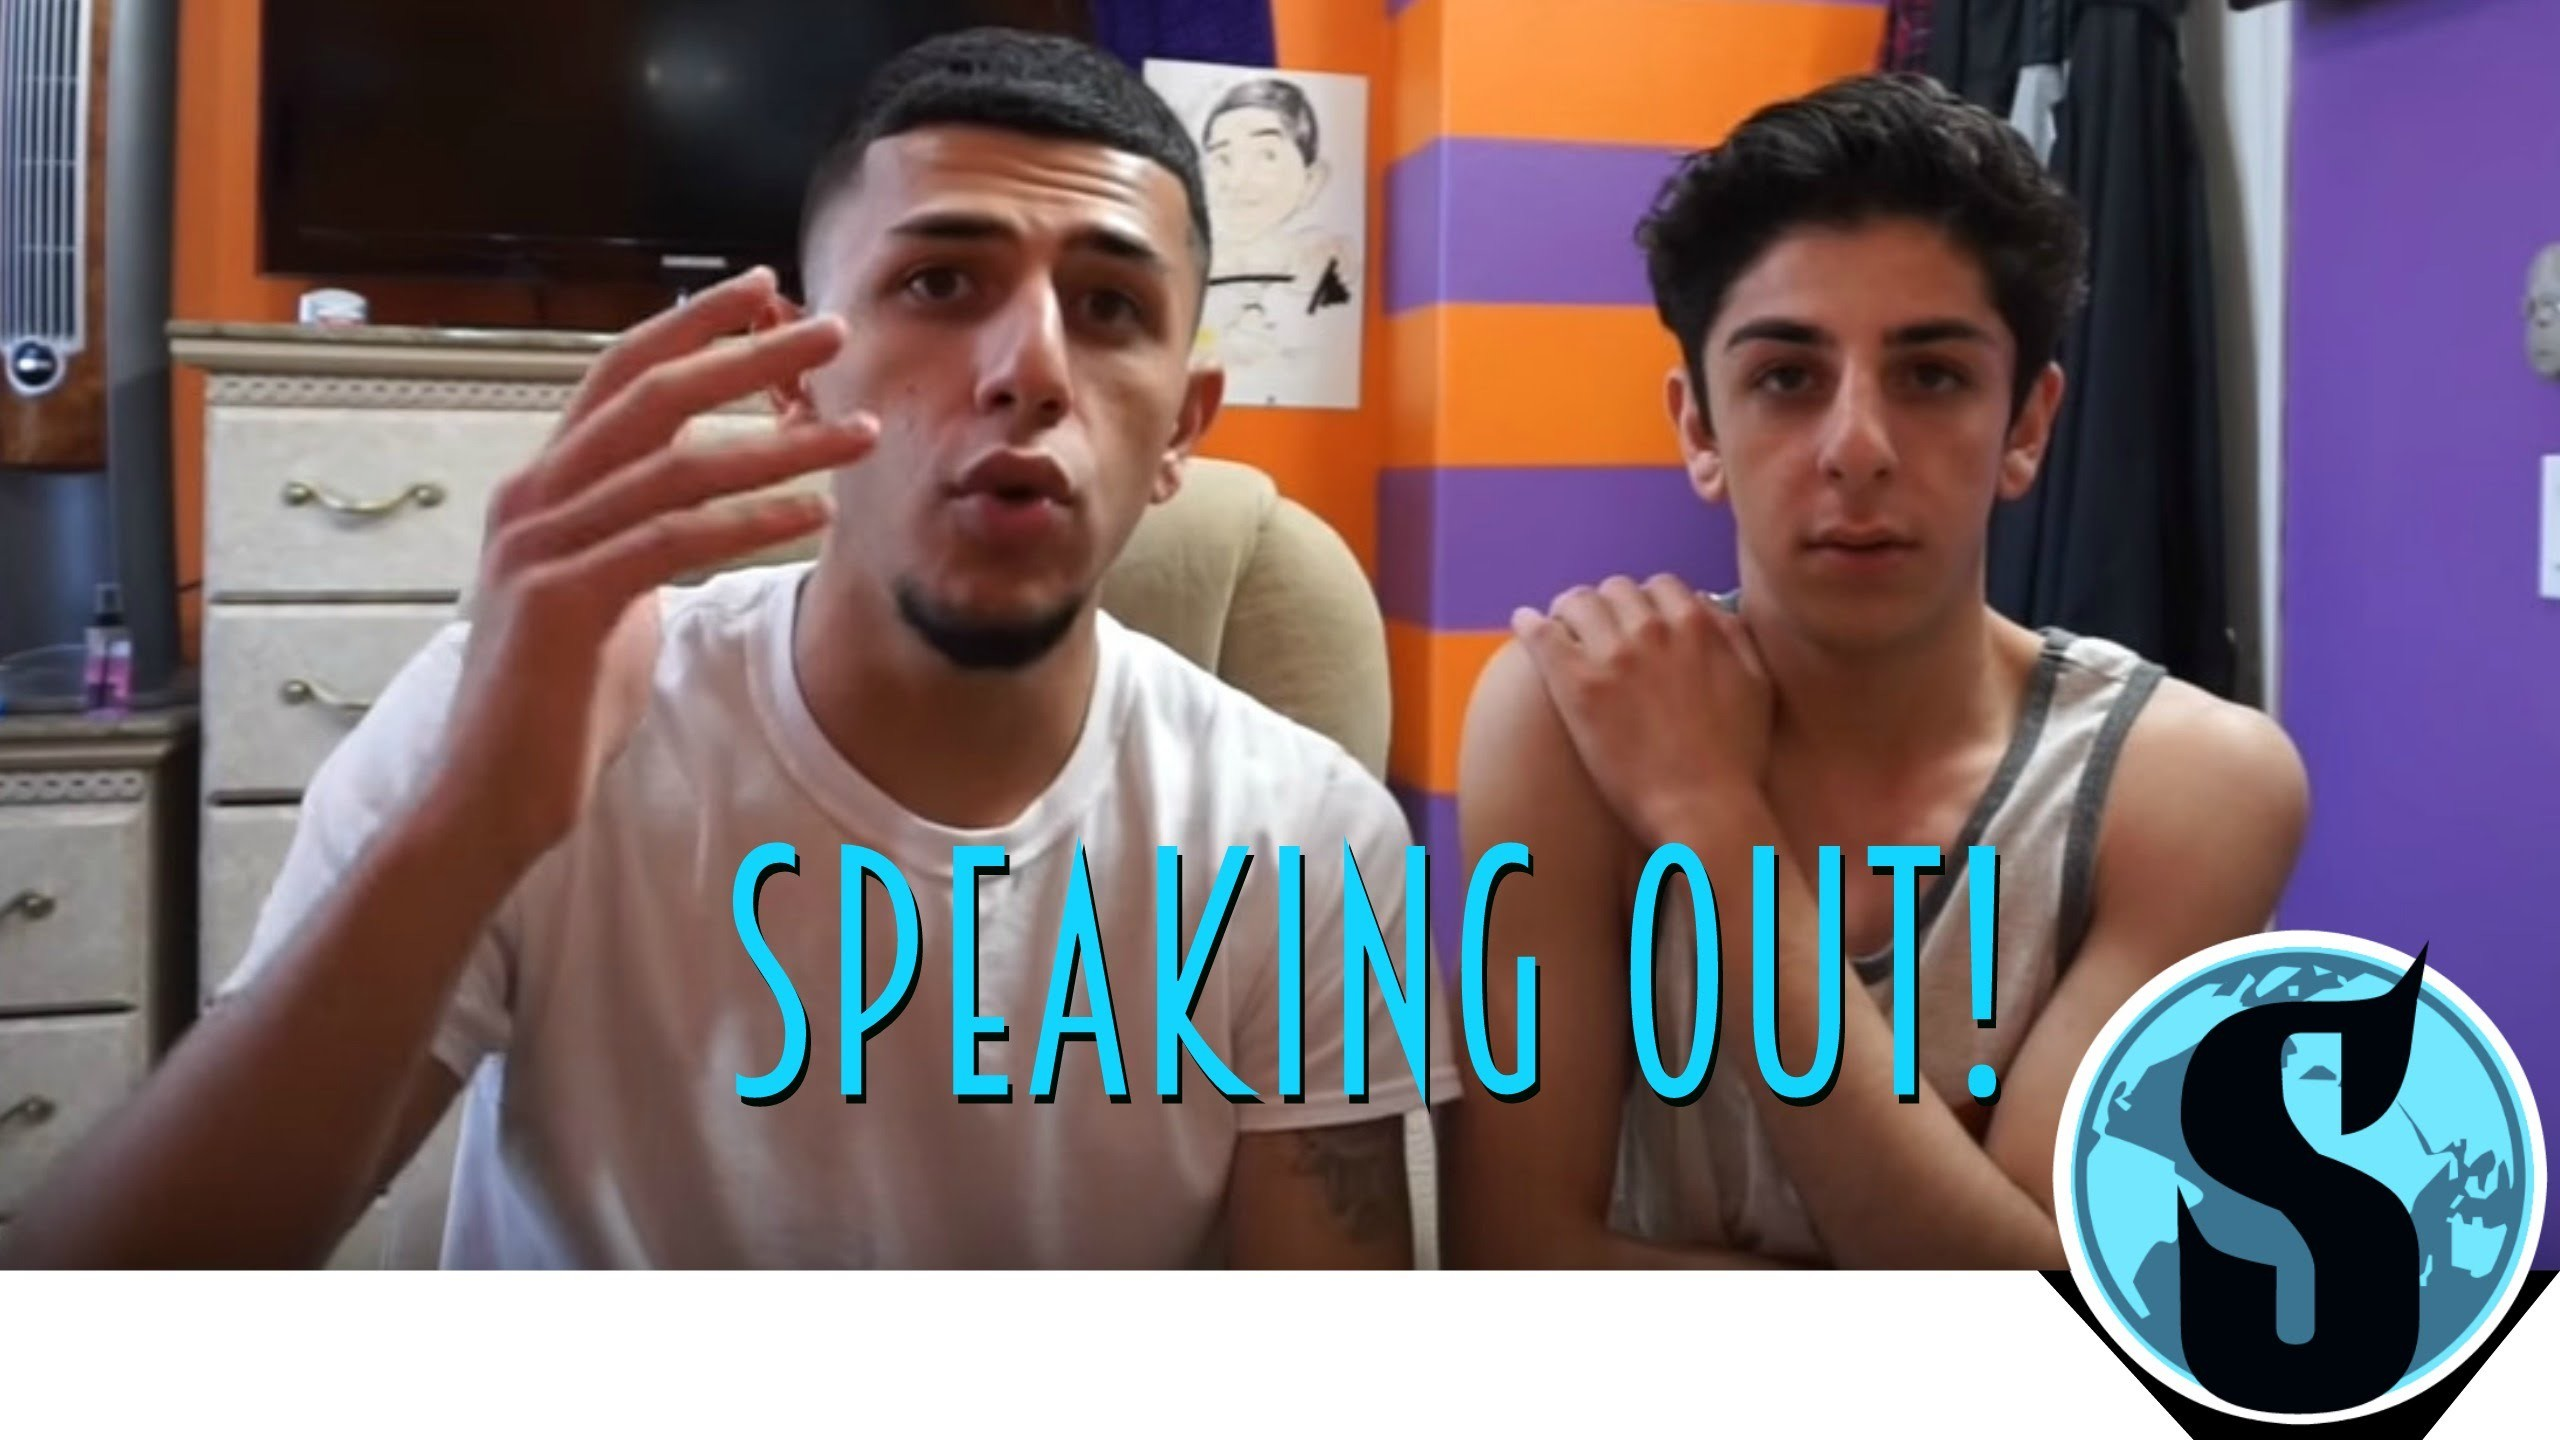 FaZe Rug & Brawadis Speak Out About Everything, Brawadis Hacked On ALL  Social Media – YouTube